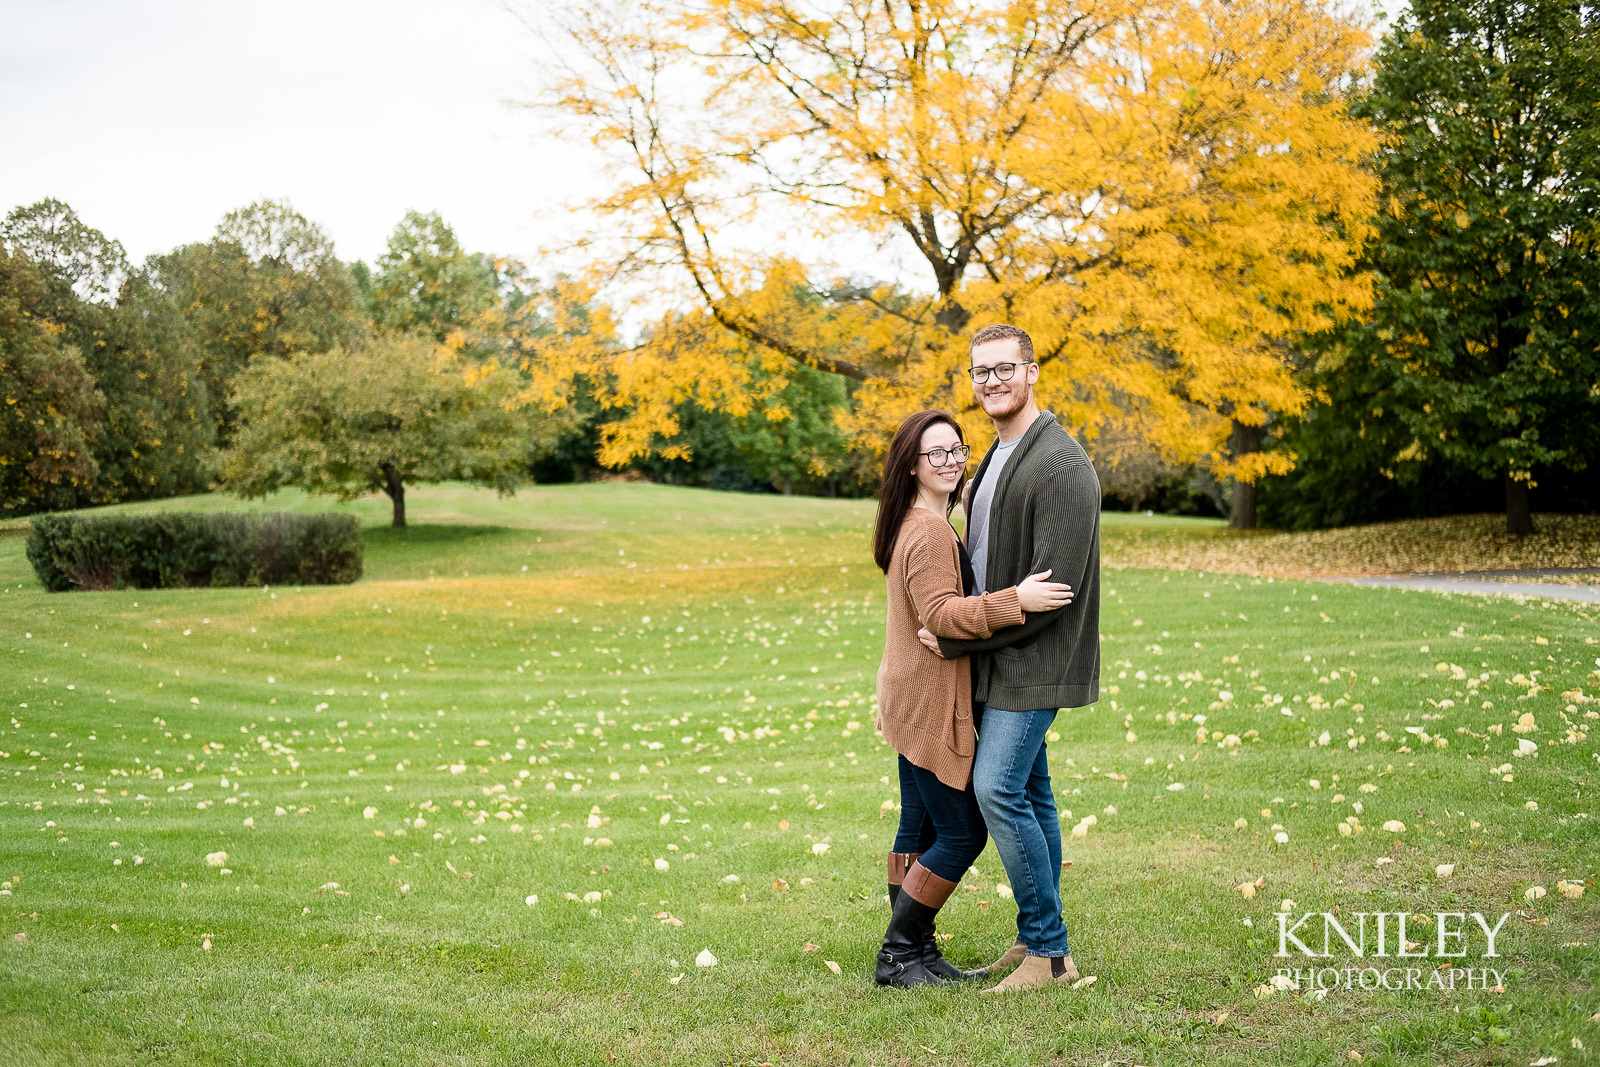 34 - Highland Park Fall Engagement Session - Rochester NY - XT2A1573.jpg